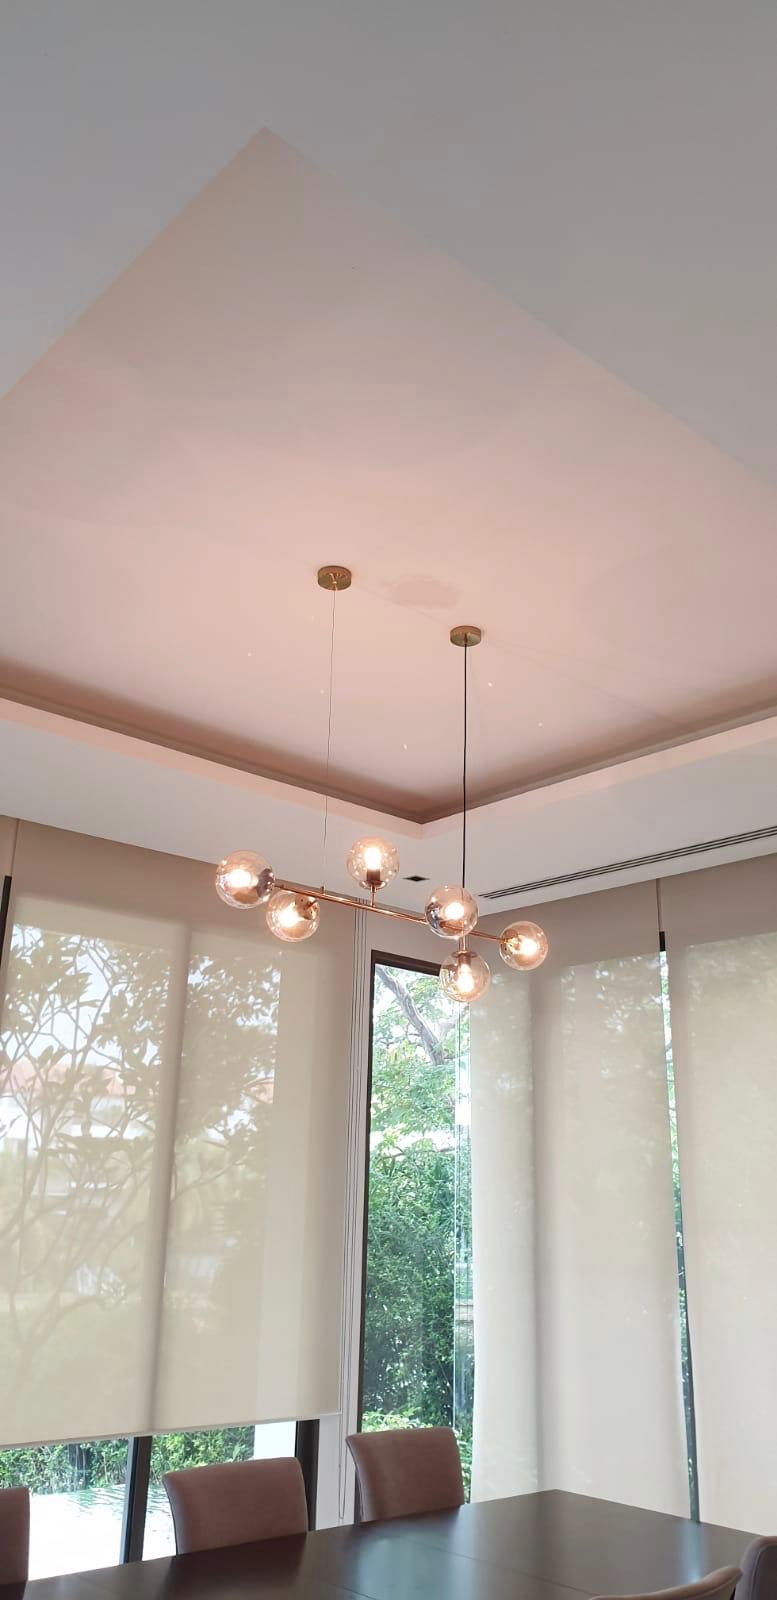 Install hanging light